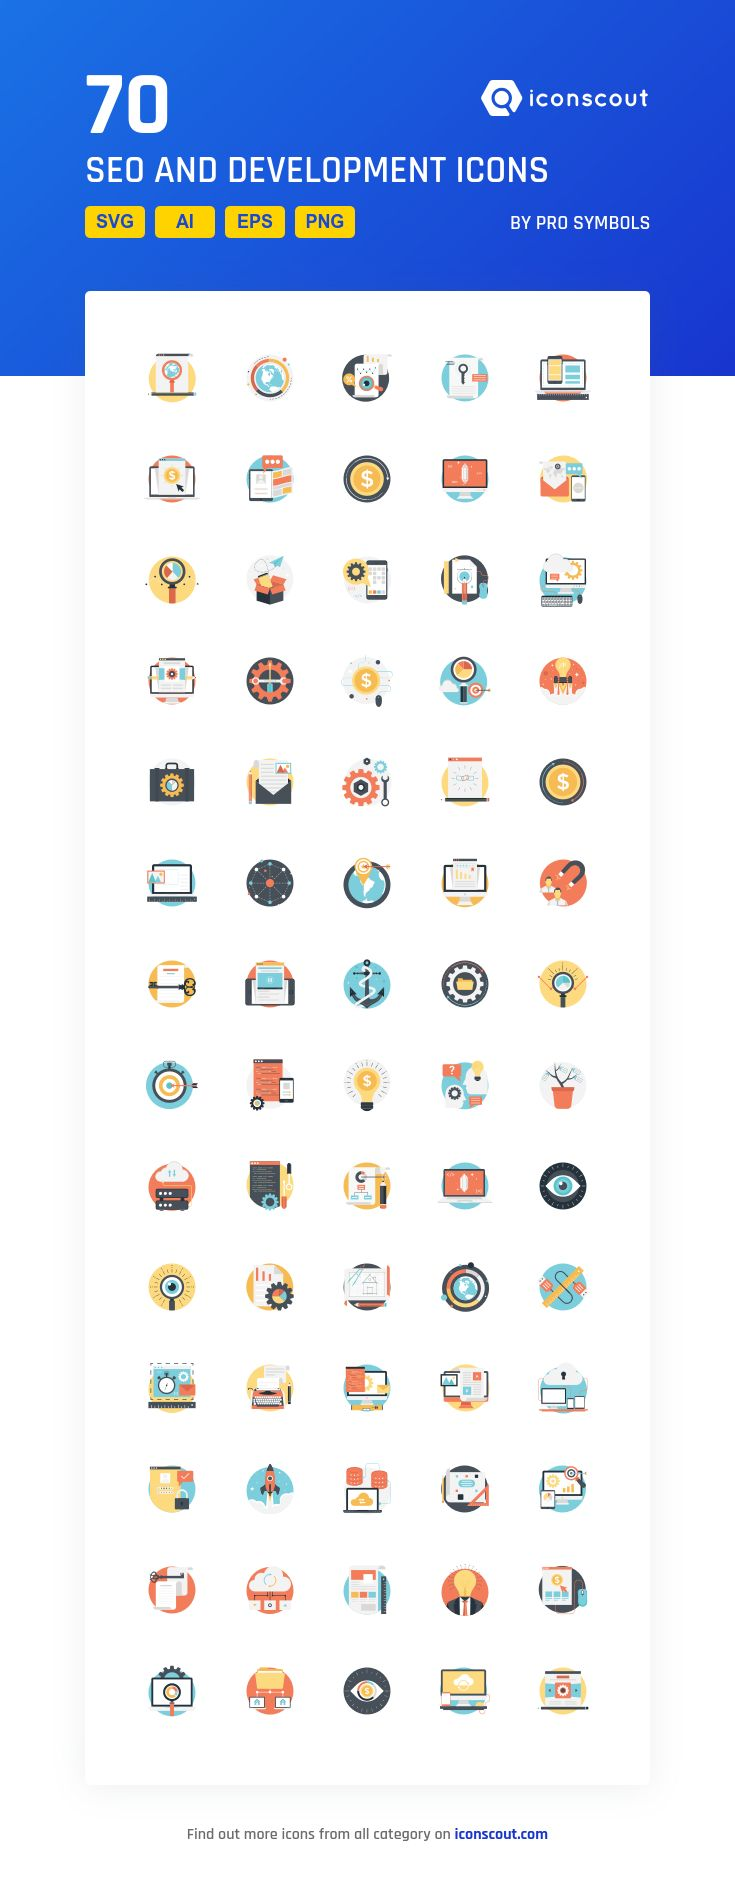 SEO And Development   Icon Pack - 70 Flat Icons